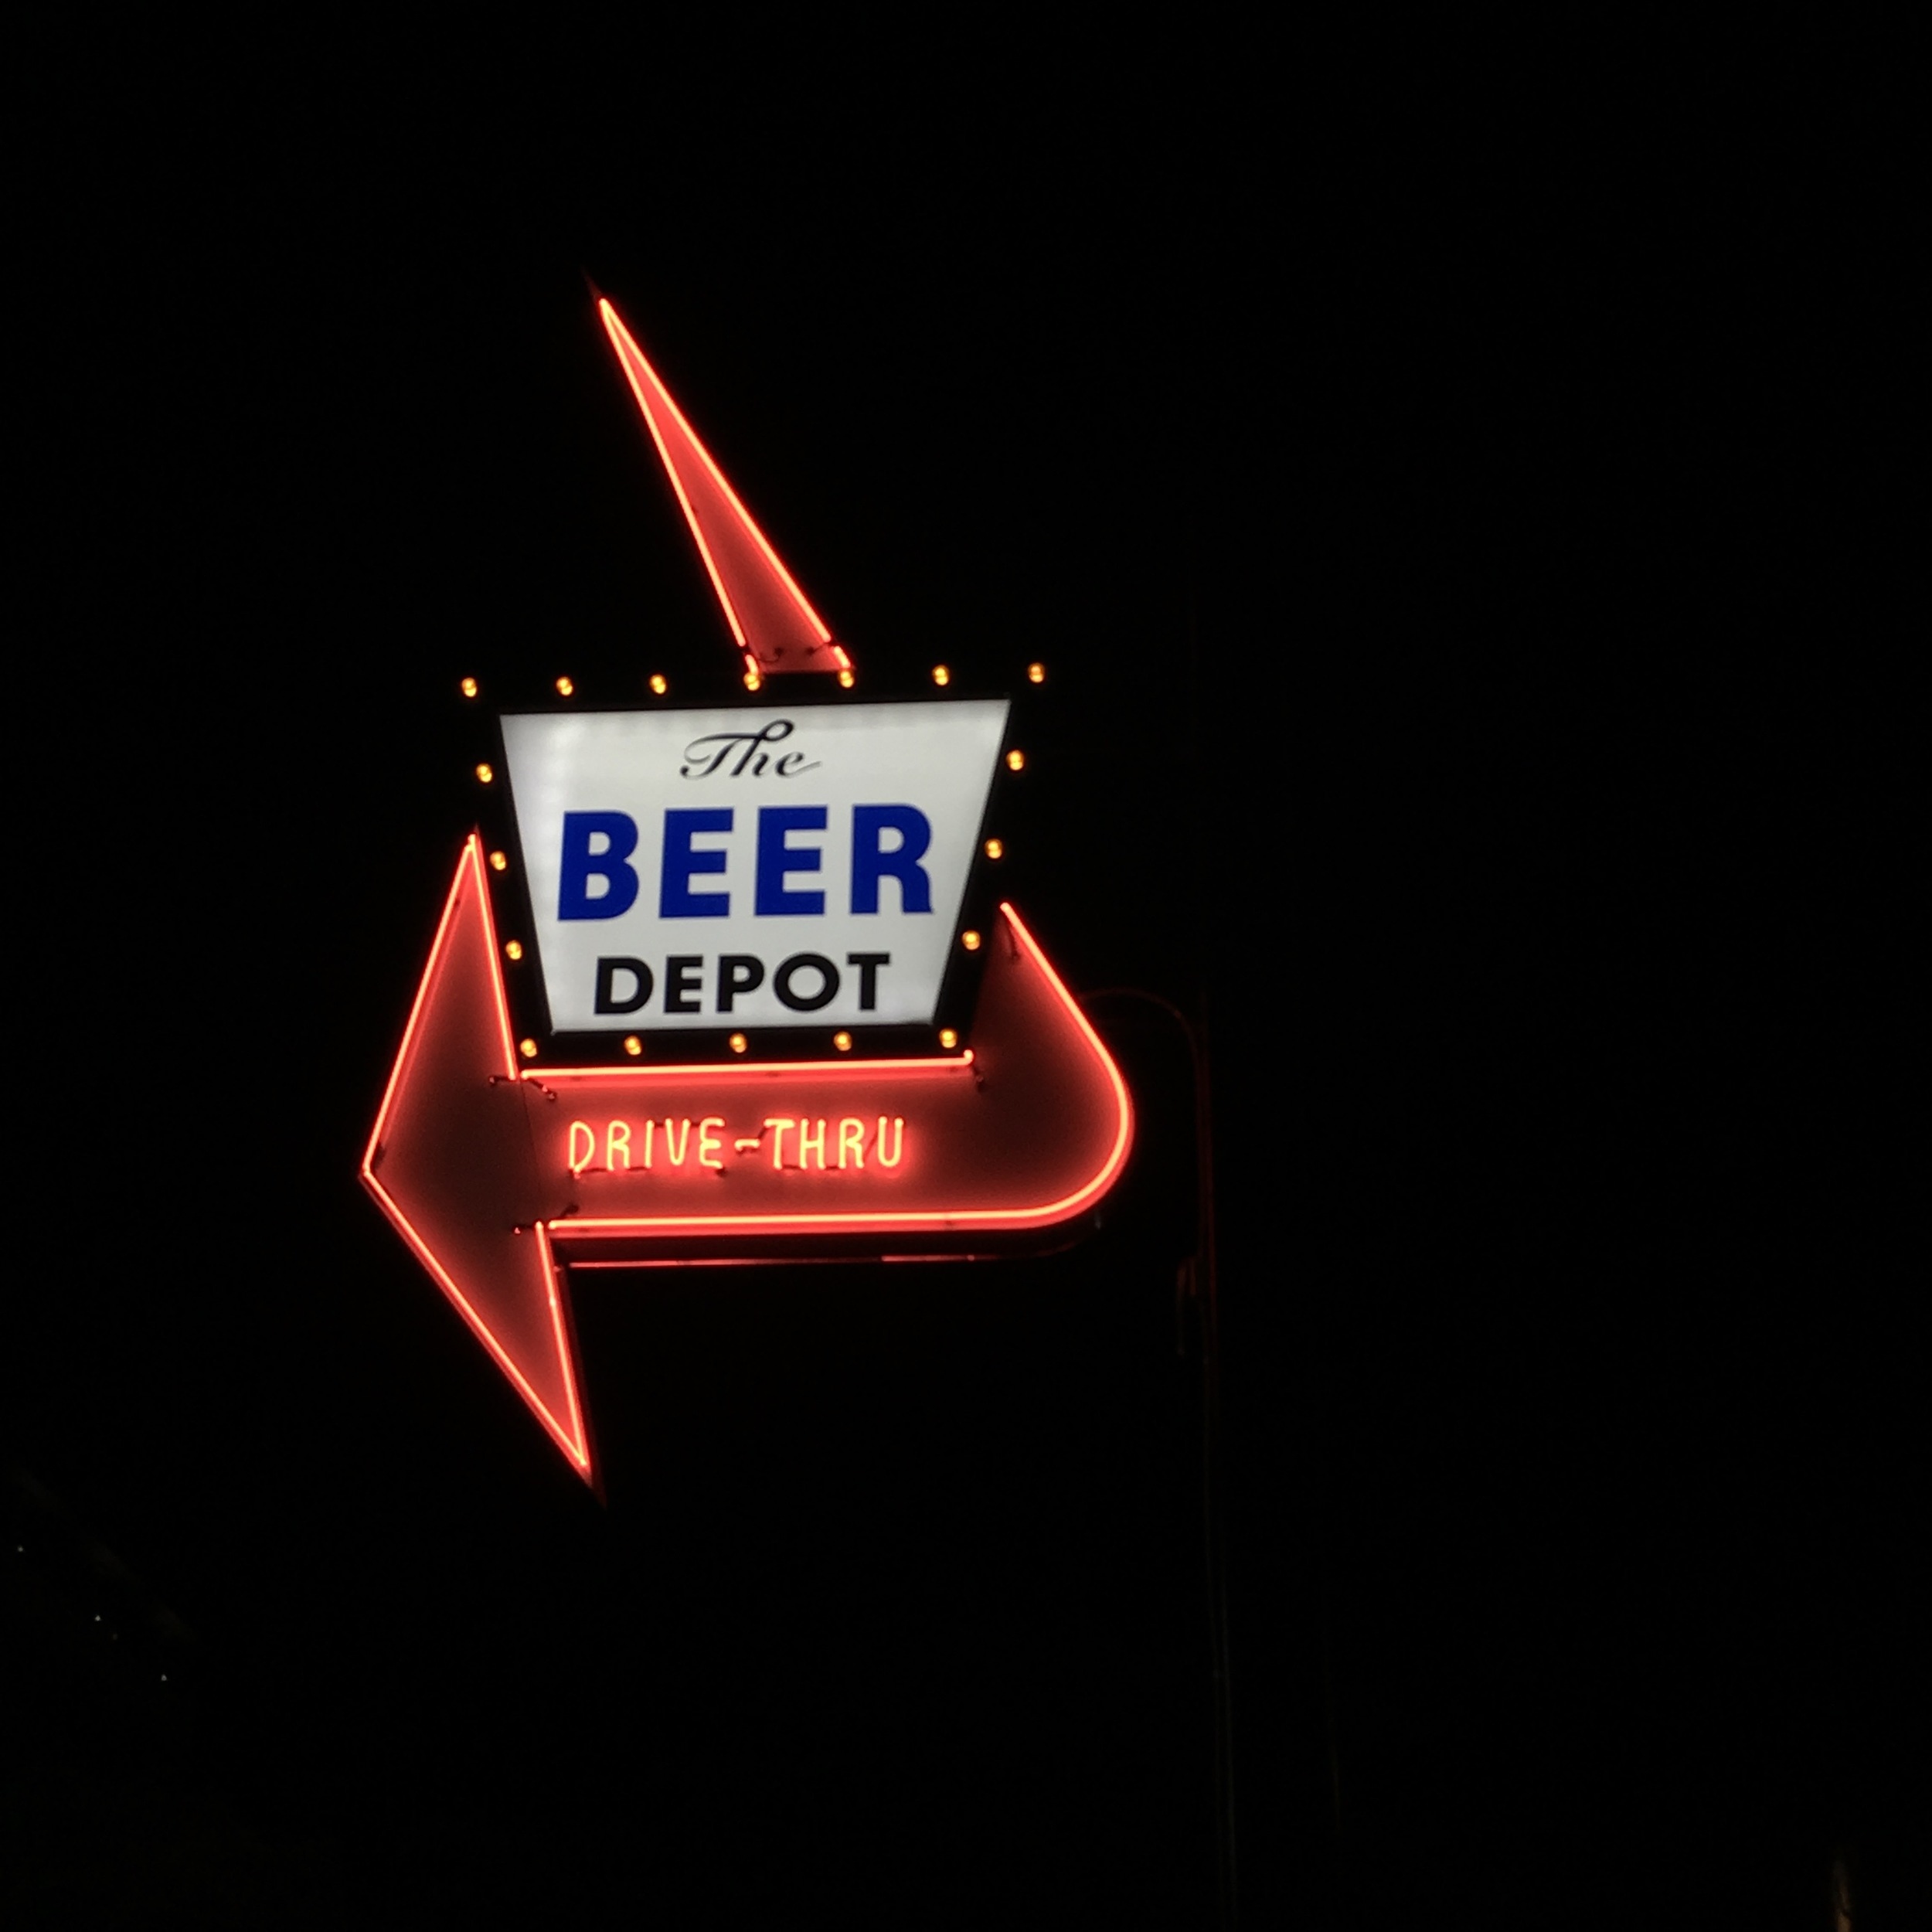 The Beer Depot. How great is this sign?